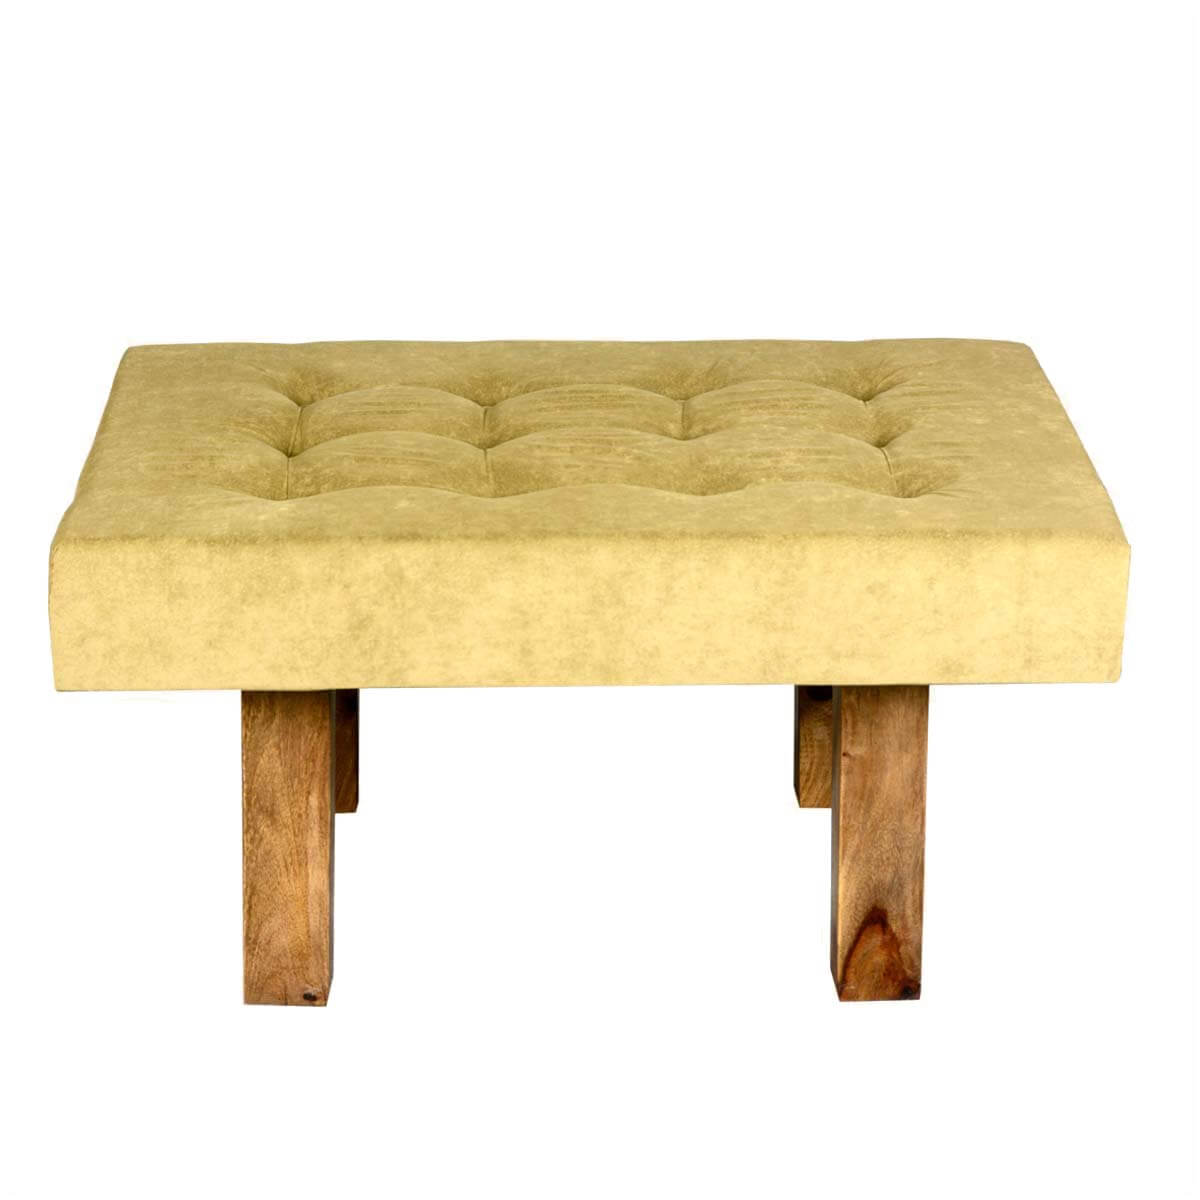 Contemporary solid wood tufted fabric coffee table ottoman